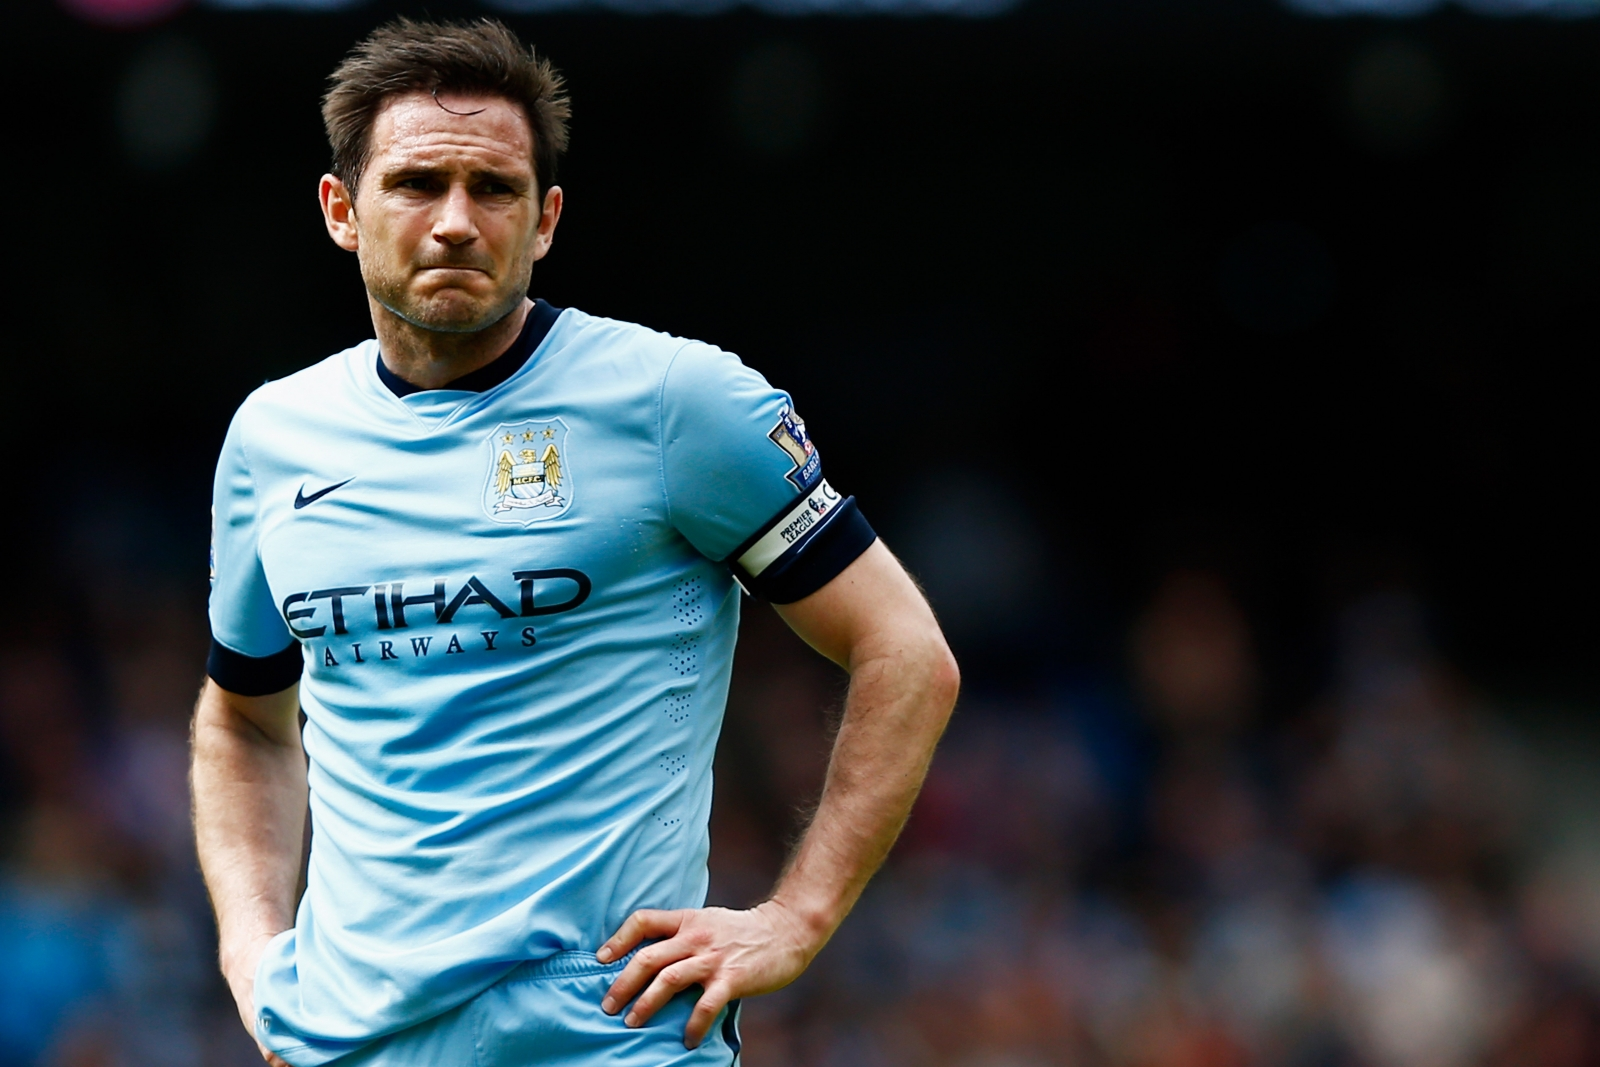 backs Chelsea Bridge  news: Lampard Frank Stamford legend